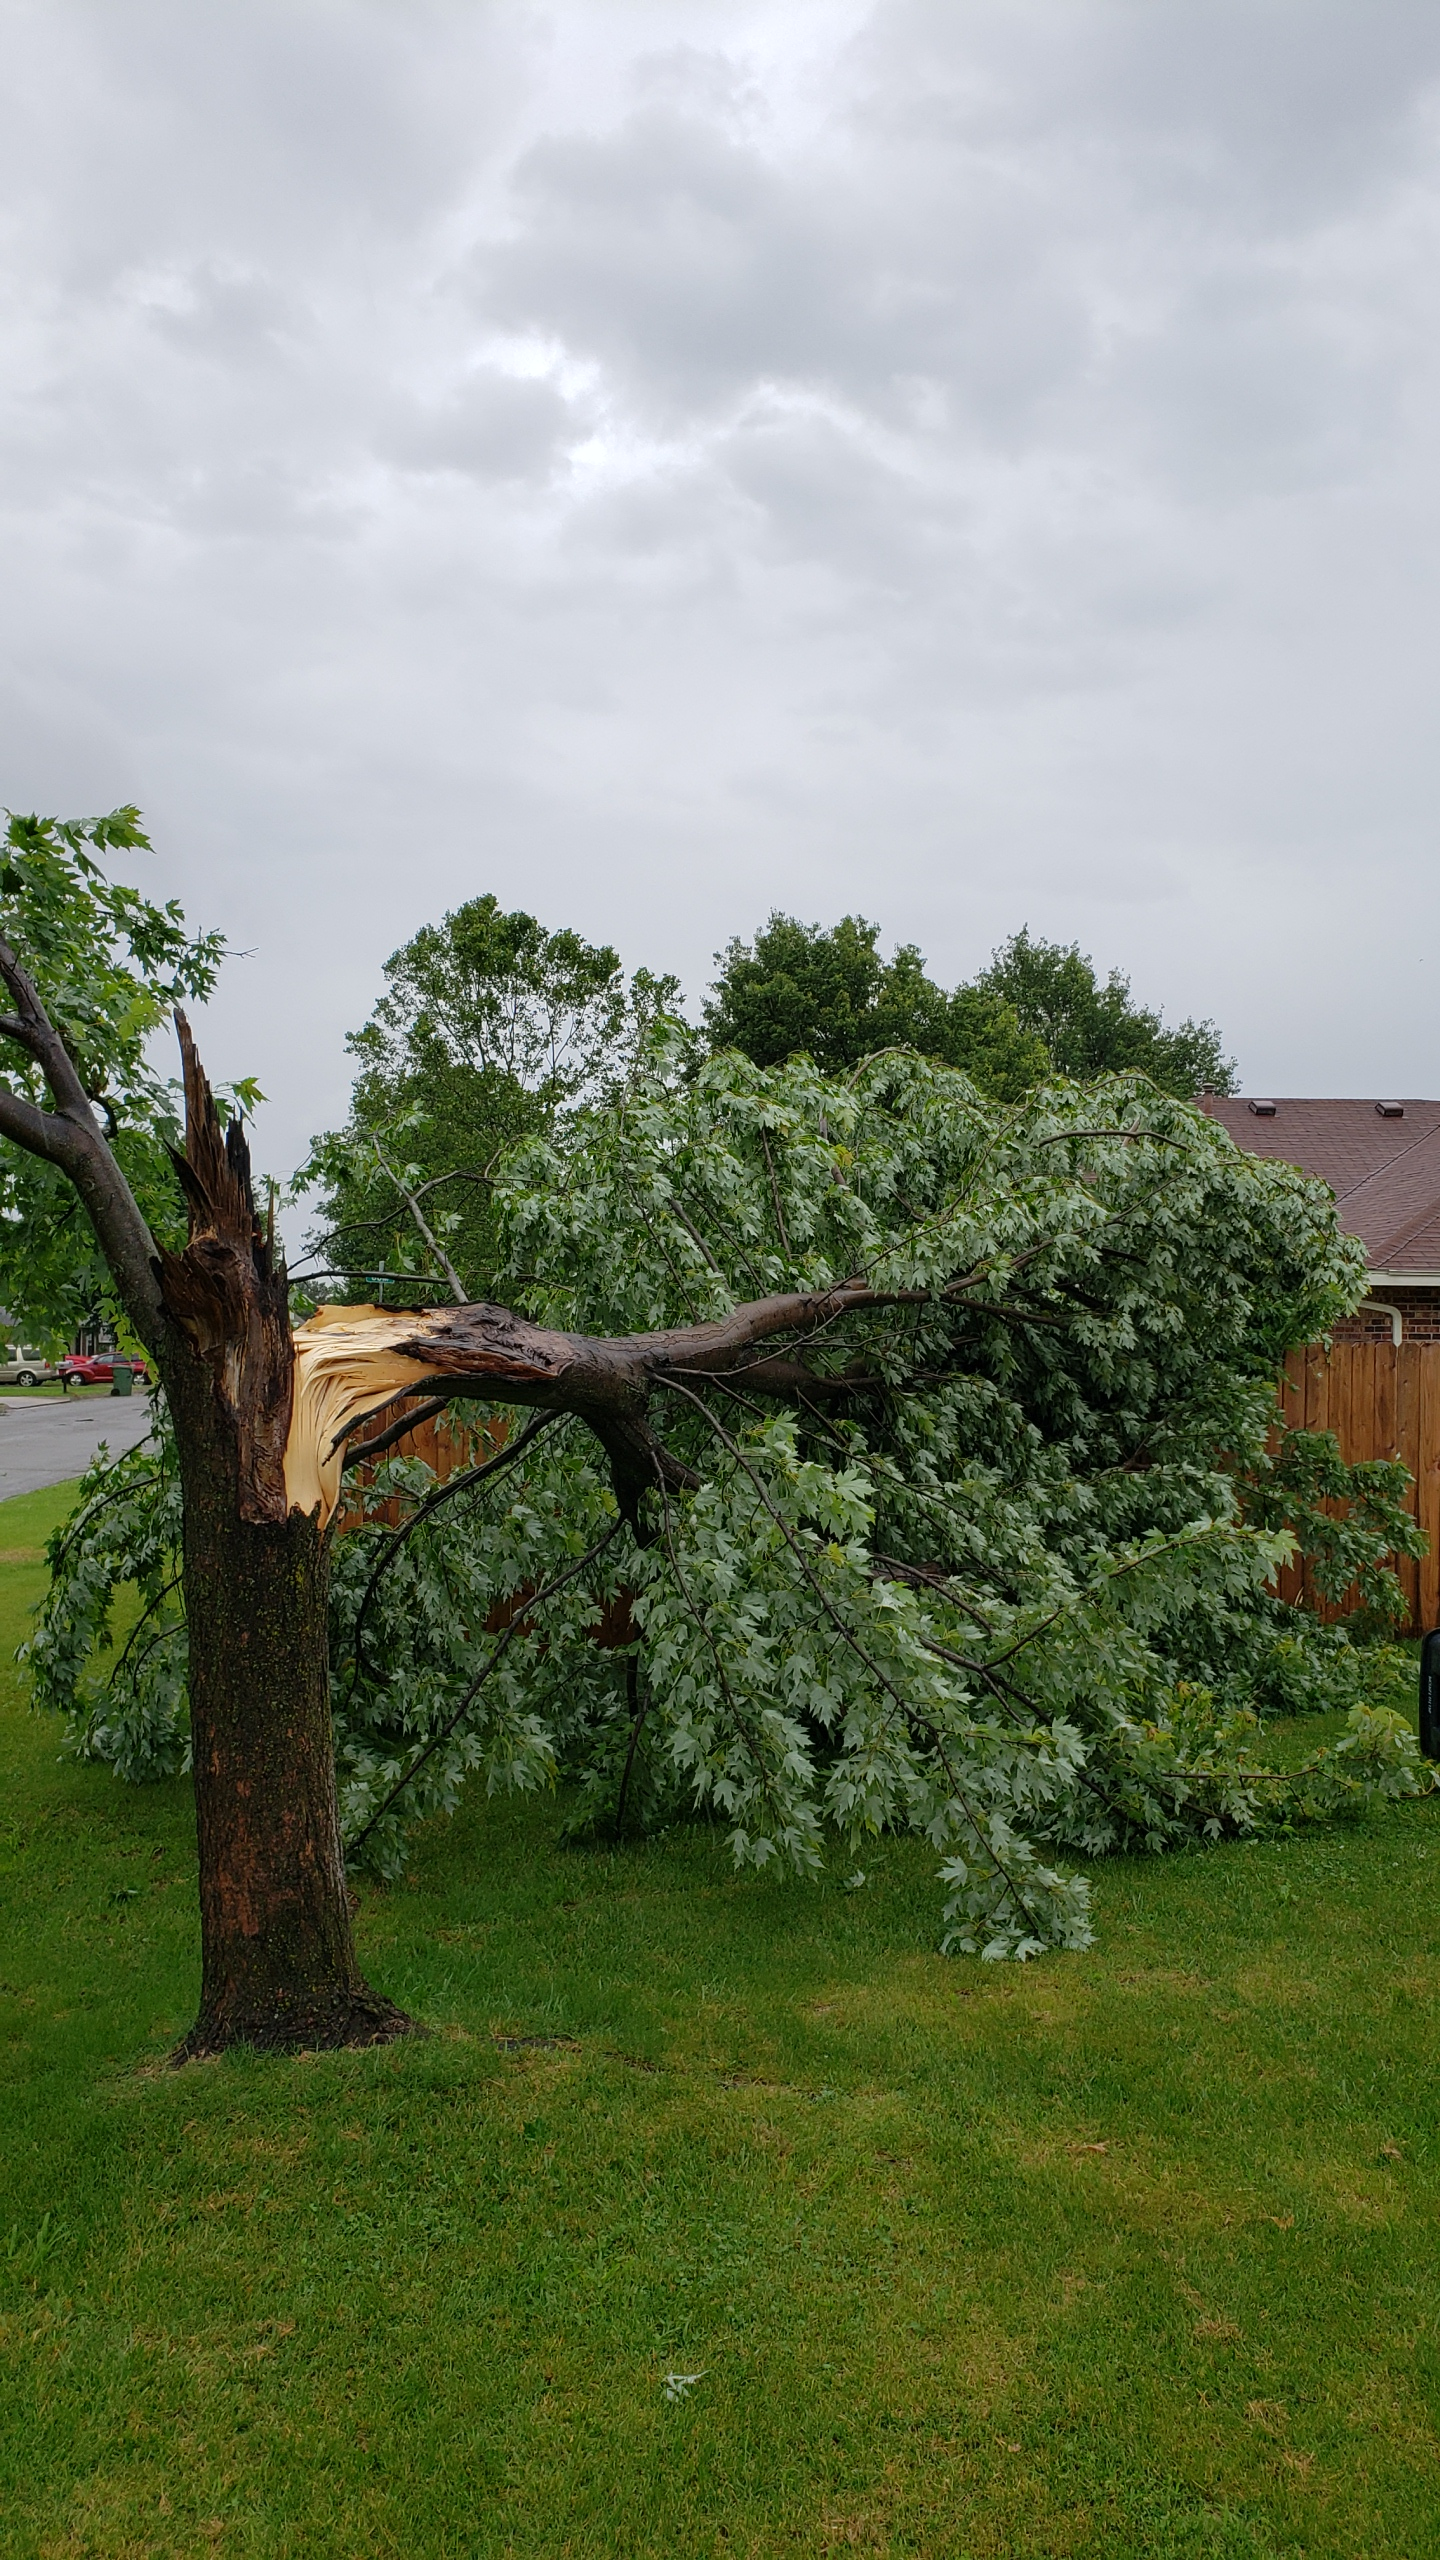 From the noon storms, 25th and Gum in Rogers (Courtesy of Christopher Vore)